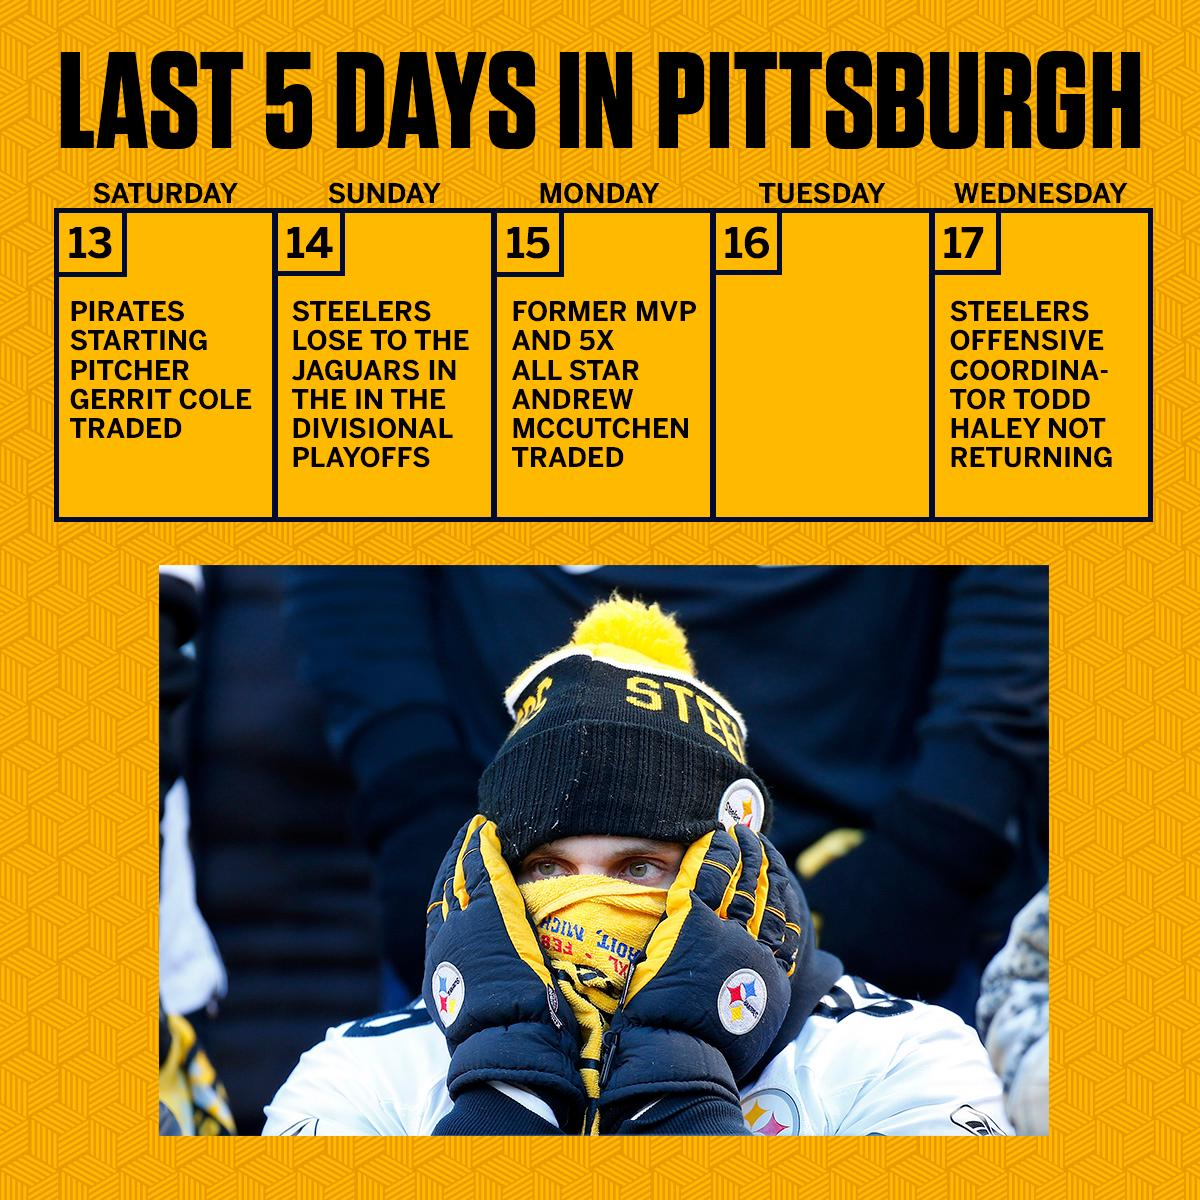 It's been a tough few days for Pittsburgh sports fans. https://t.co/hxQoS0eZHj